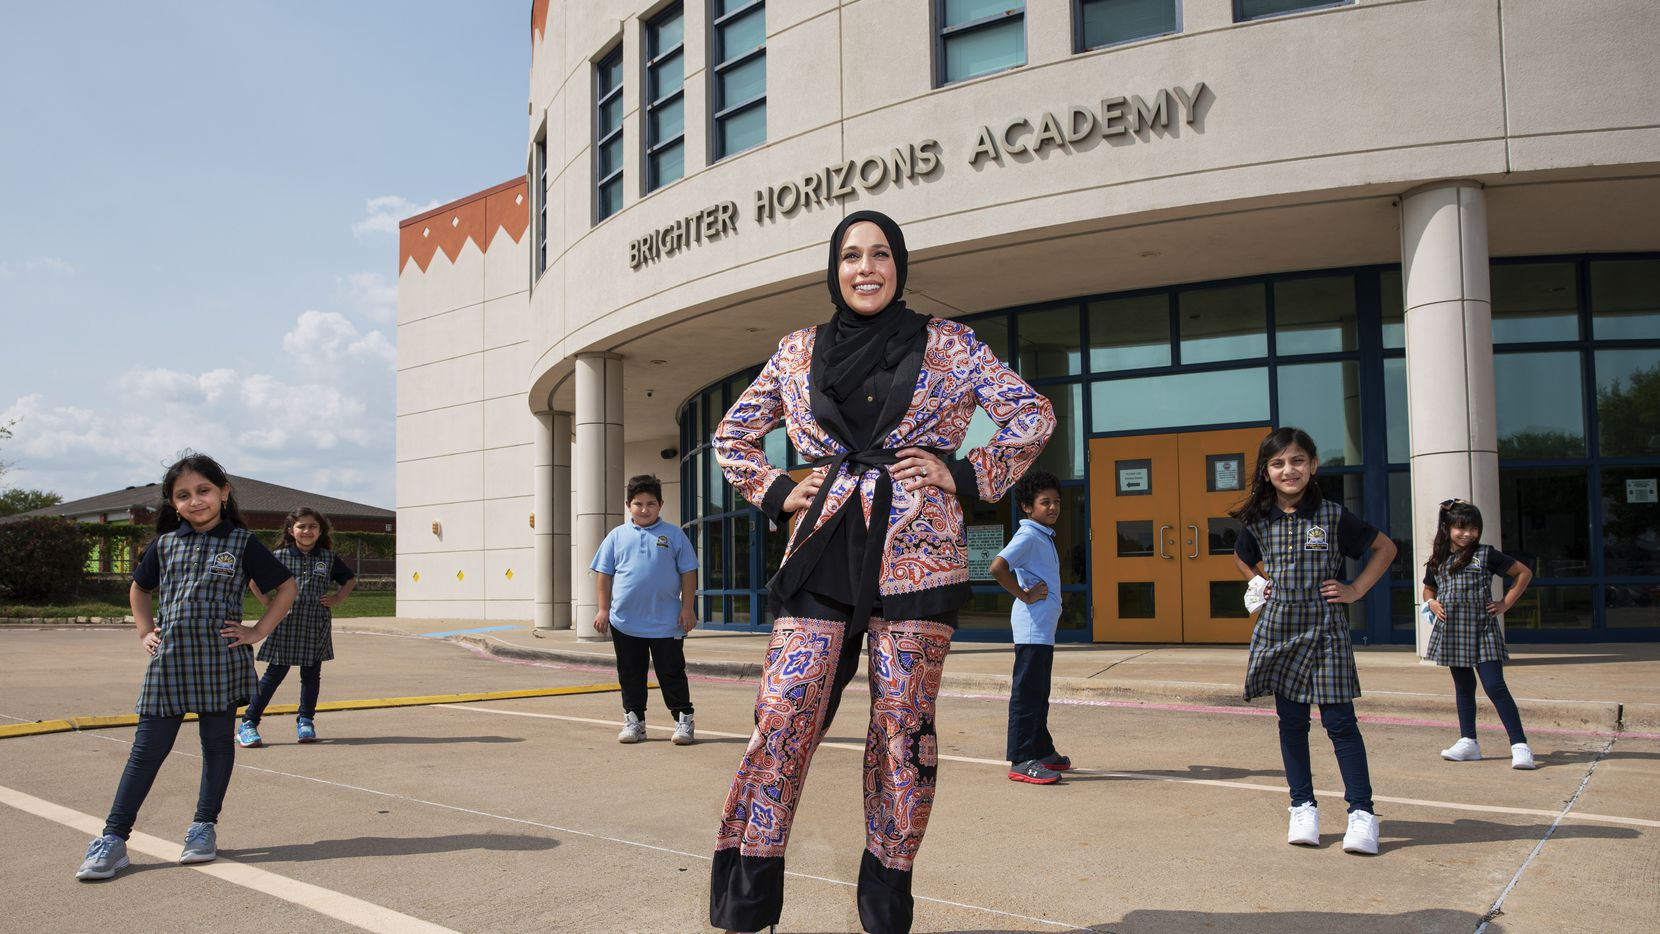 Alaa Ammuss, 31, of Plano, an alumna of Brighter Horizons Academy in Garland, is surrounded by students wearing the uniforms she designed.